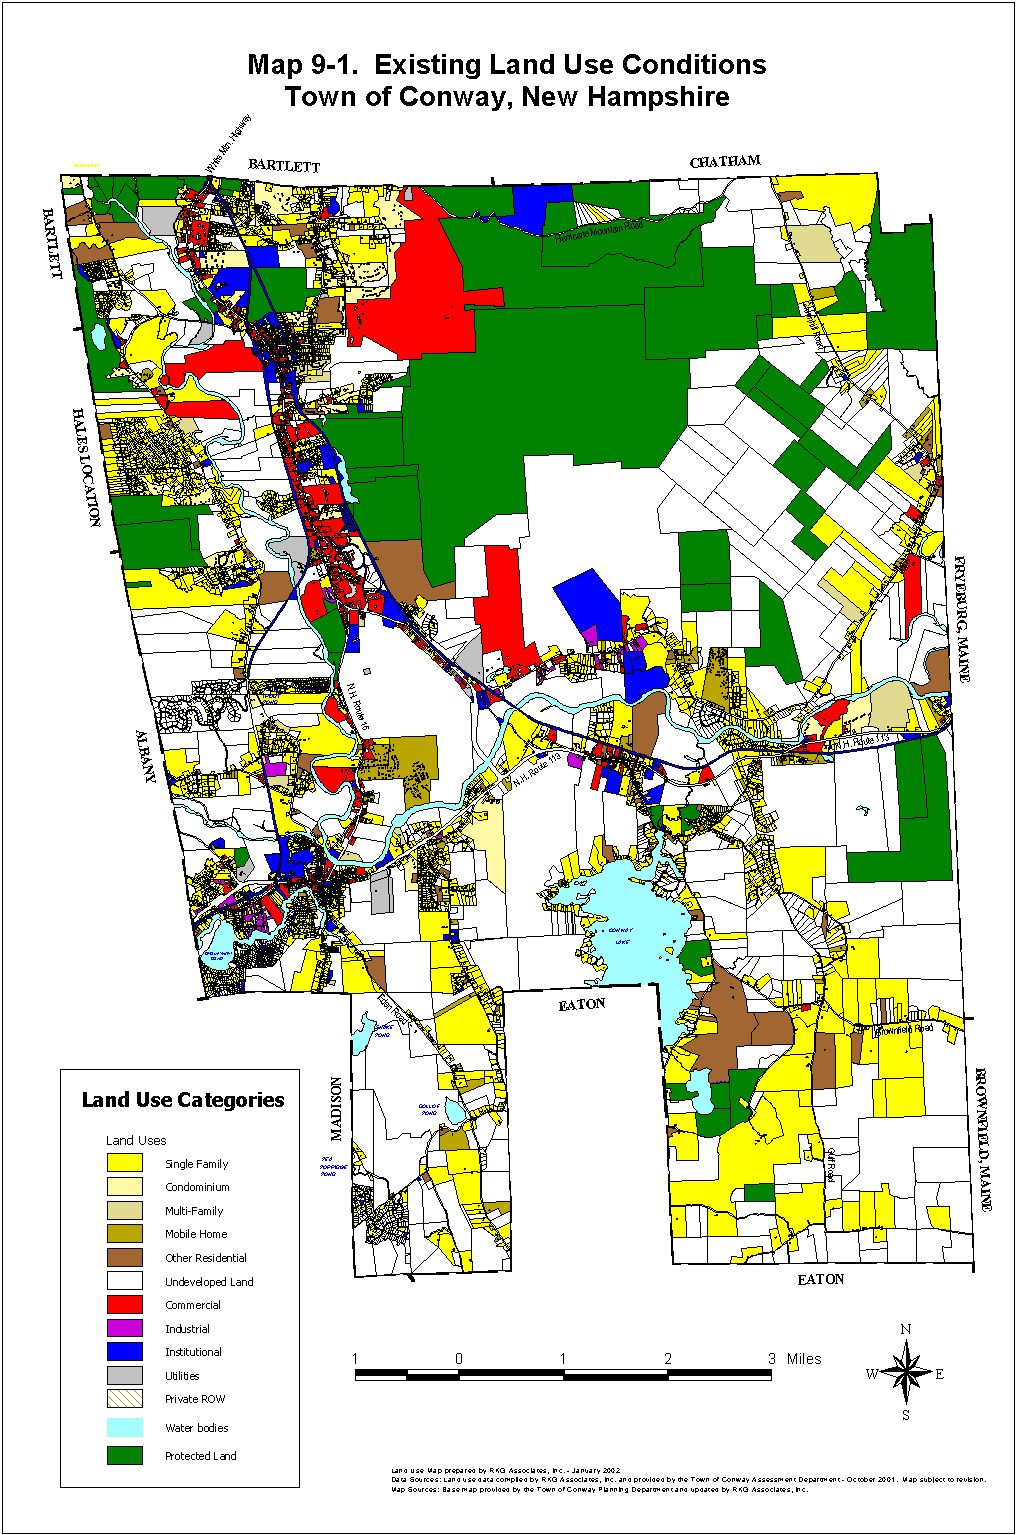 map north conway nh with Map 9 1 Existing Land Use on New H shire also Merrimack Premium Outlets besides Summer Activities together with Photos further Map 9 1 Existing Land Use.